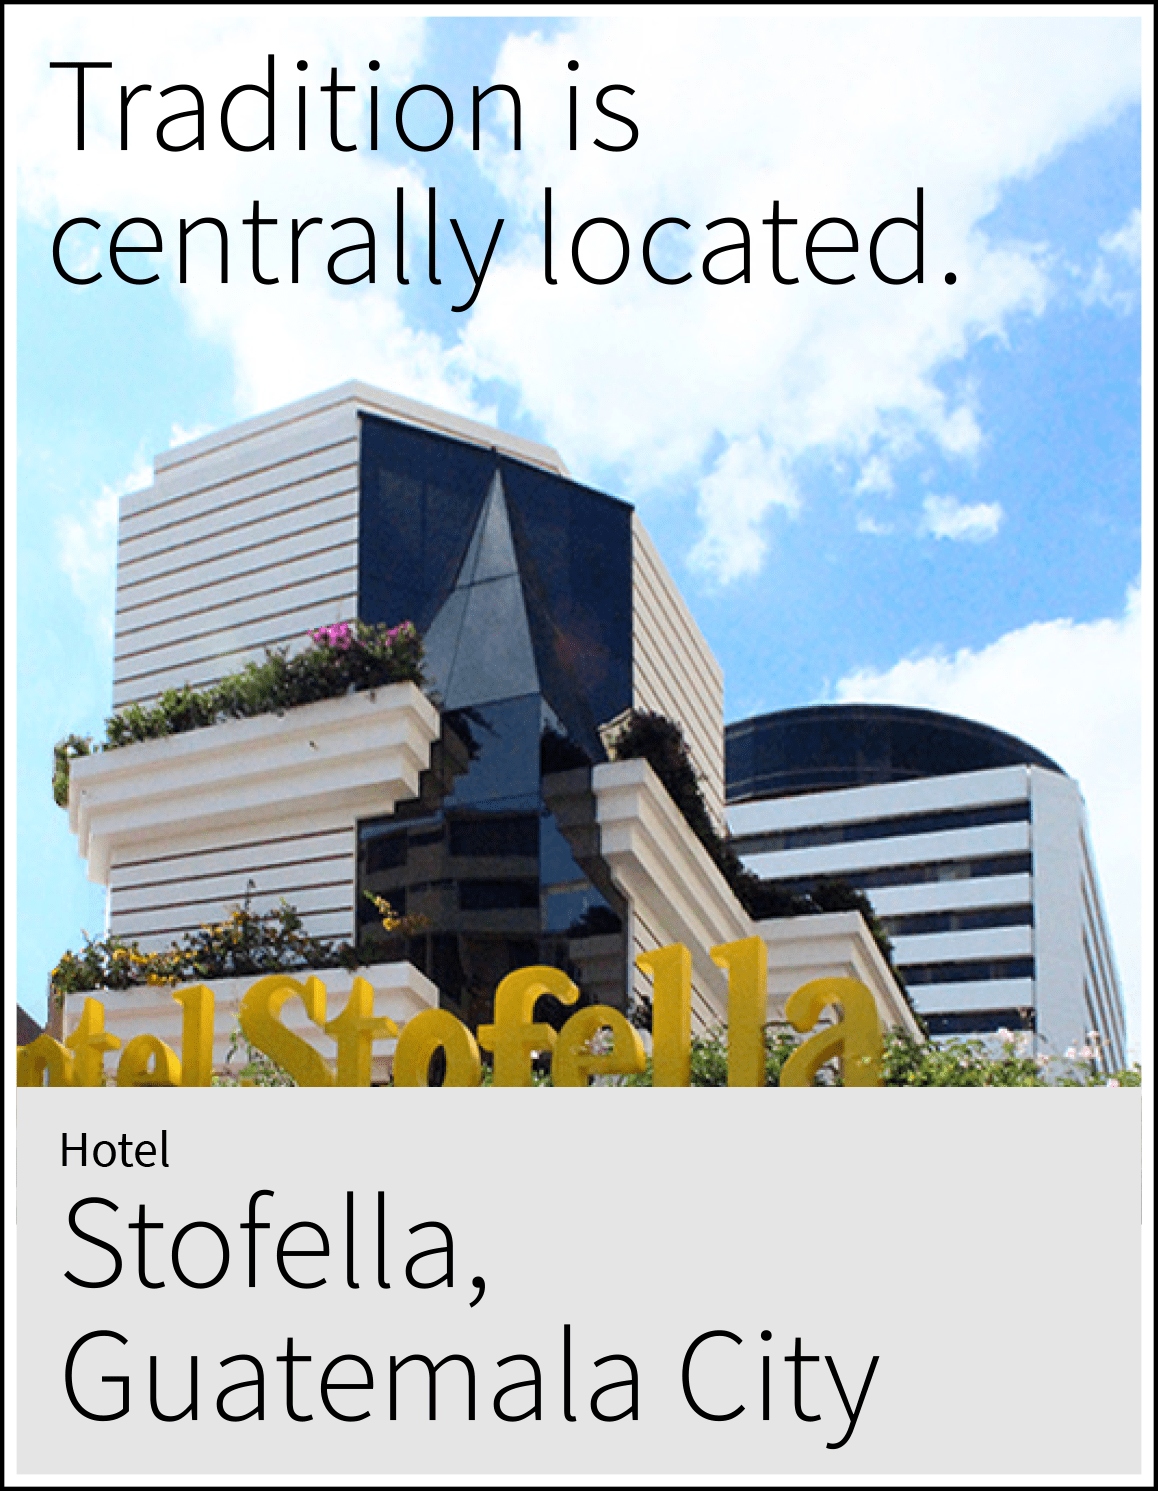 Information about Hotel Stofella in Guatemala City.